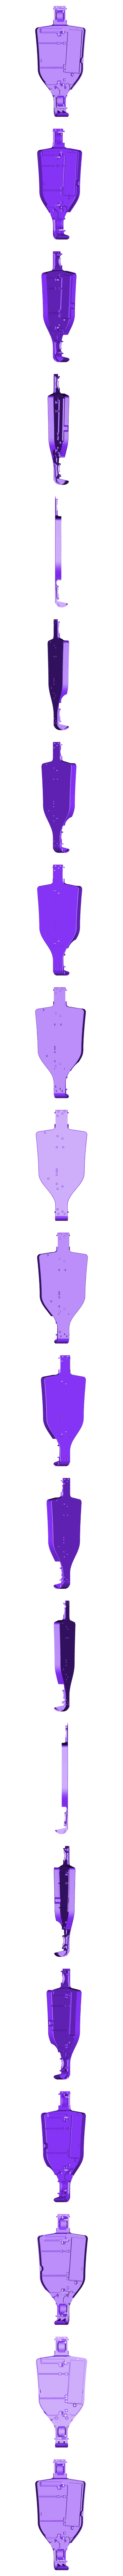 Chassisonepiece.STL Download free STL file Lynx - Fully 3D-printable 1/10 4wd buggy • Object to 3D print, tahustvedt